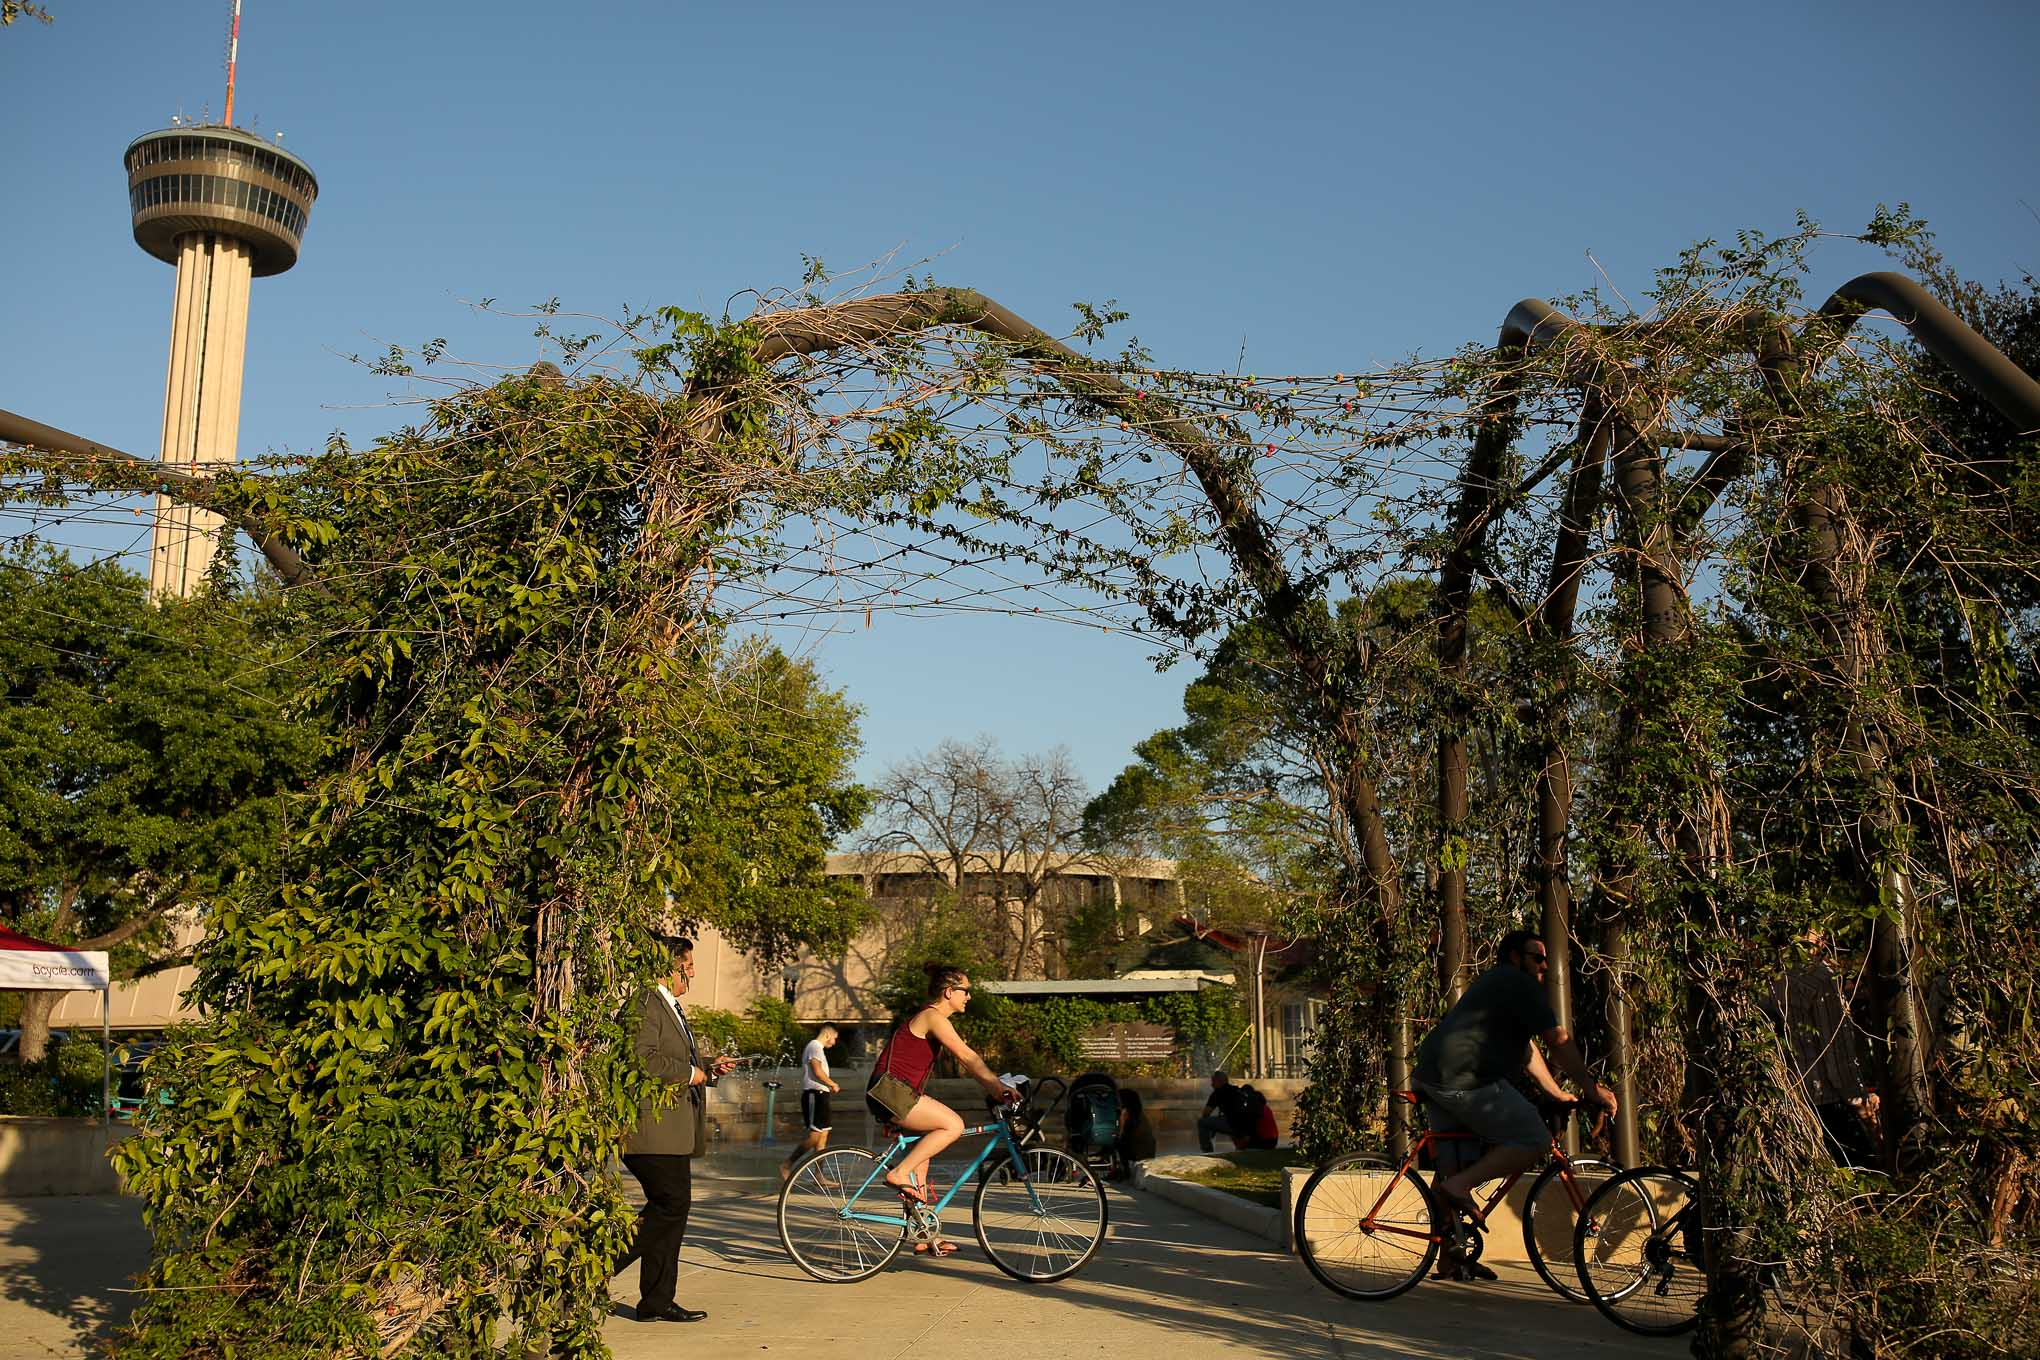 Attendees on bicycles depart from Yanaguana Garden for Blue Star.